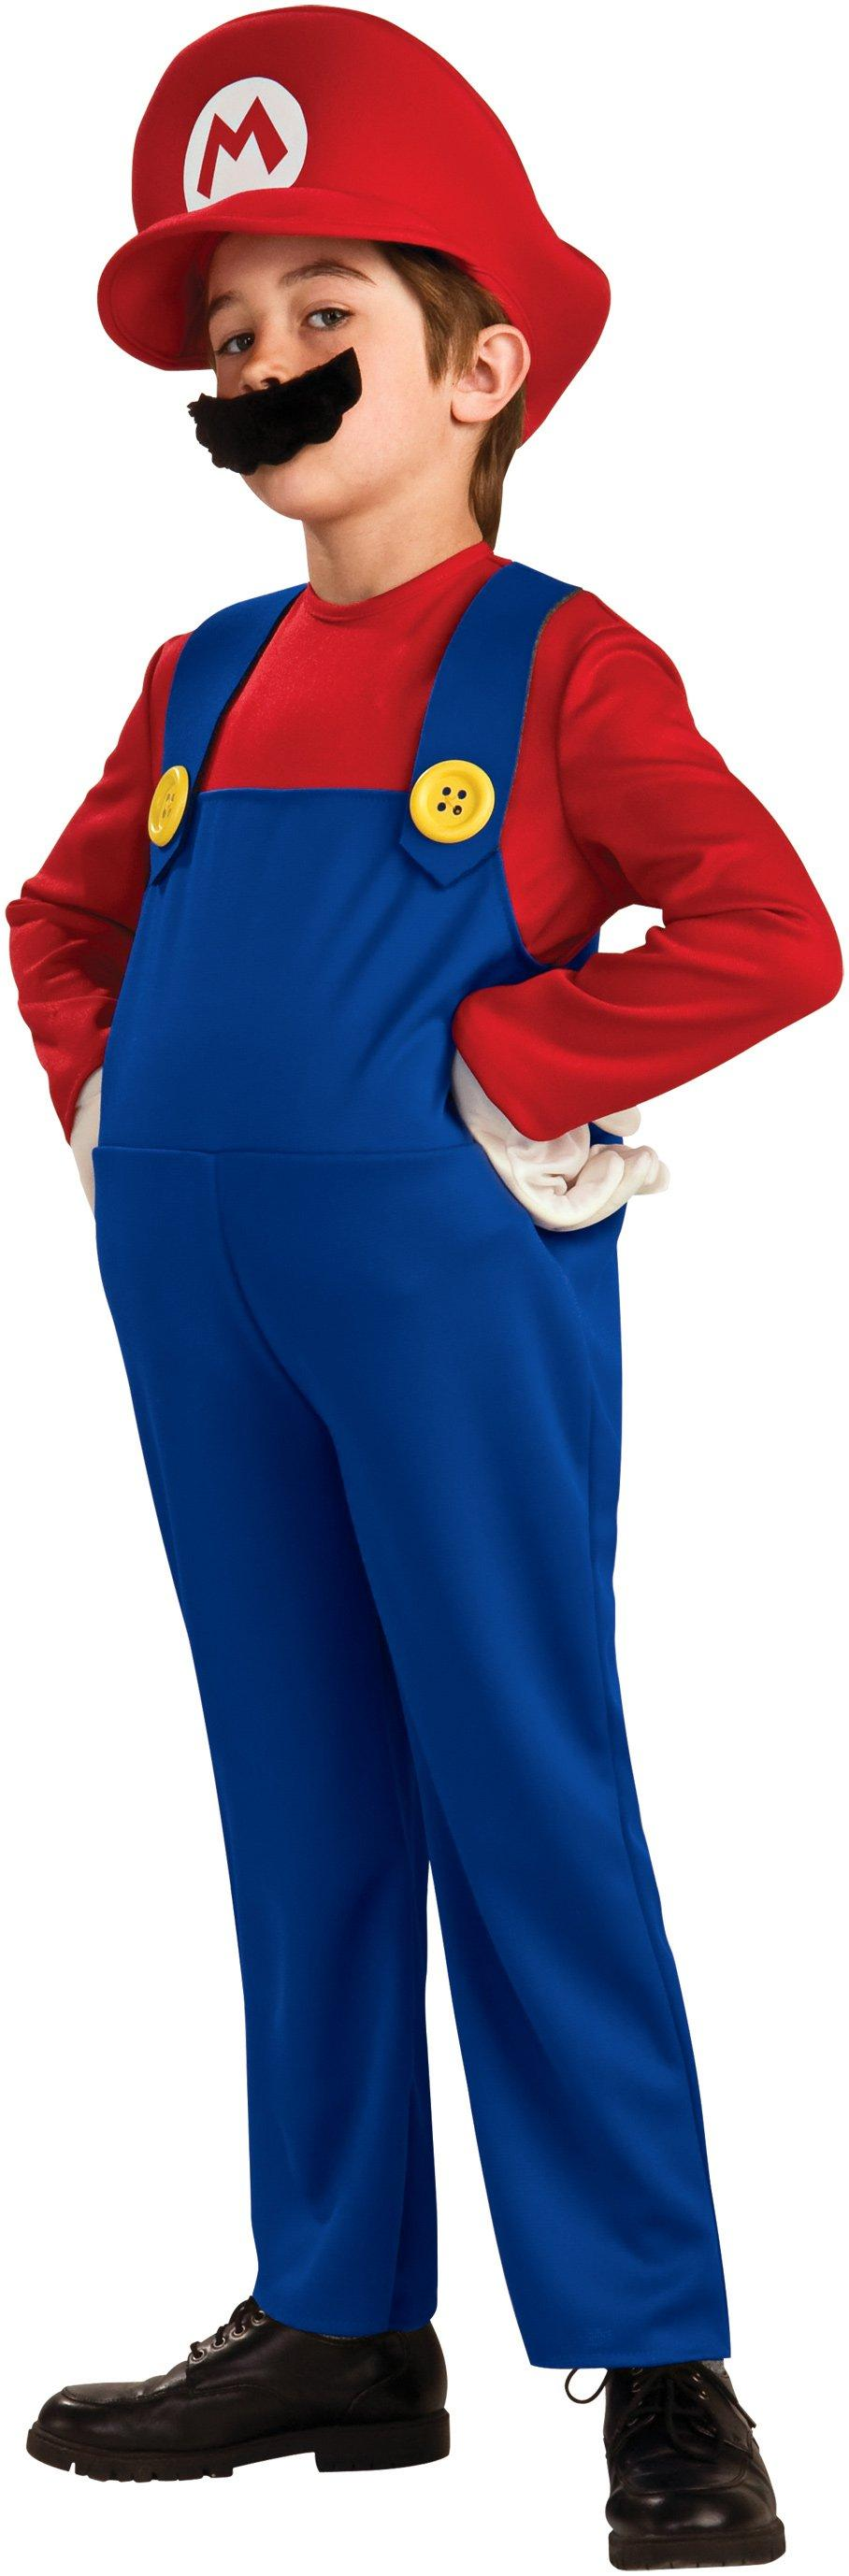 mario (super mario bros) costume deluxe for kids | halloween